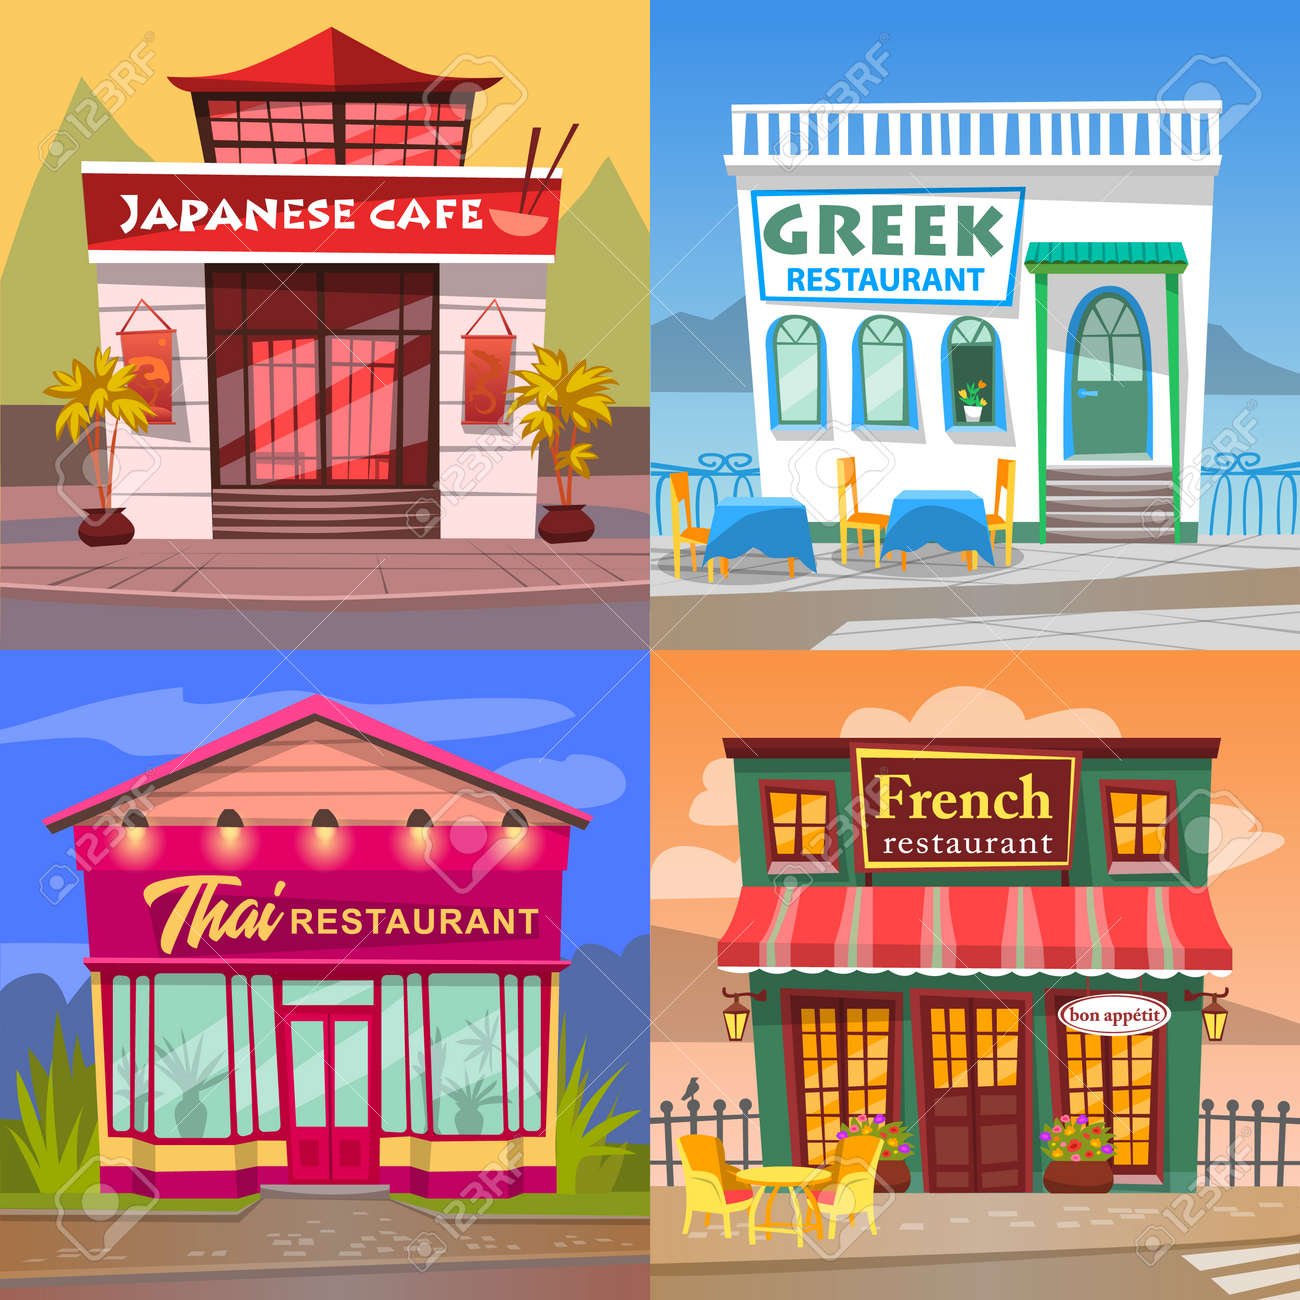 Thai And French Cuisine Vector Greek And Japanese Restaurant Royalty Free Cliparts Vectors And Stock Illustration Image 134066259